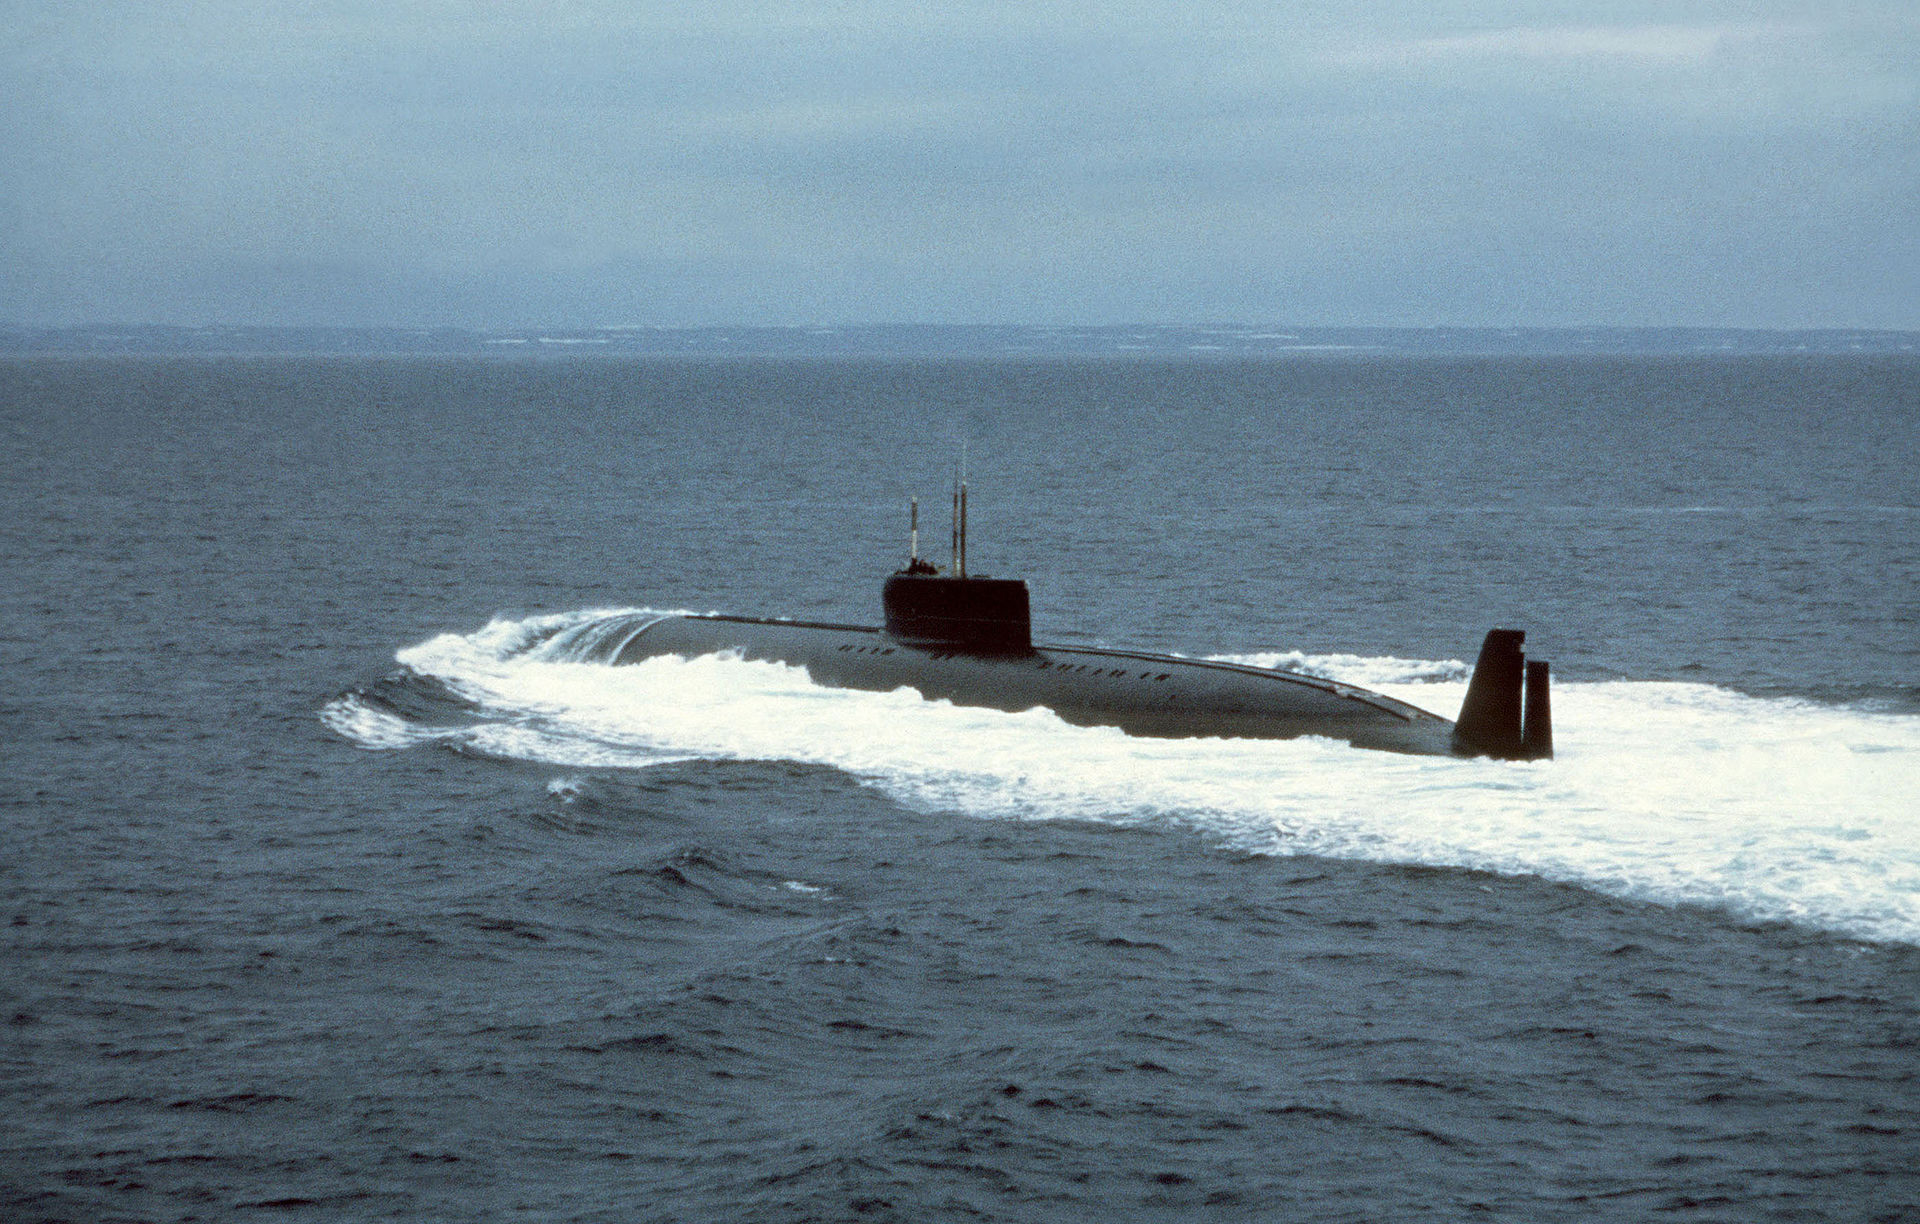 К-162 submarine on trial